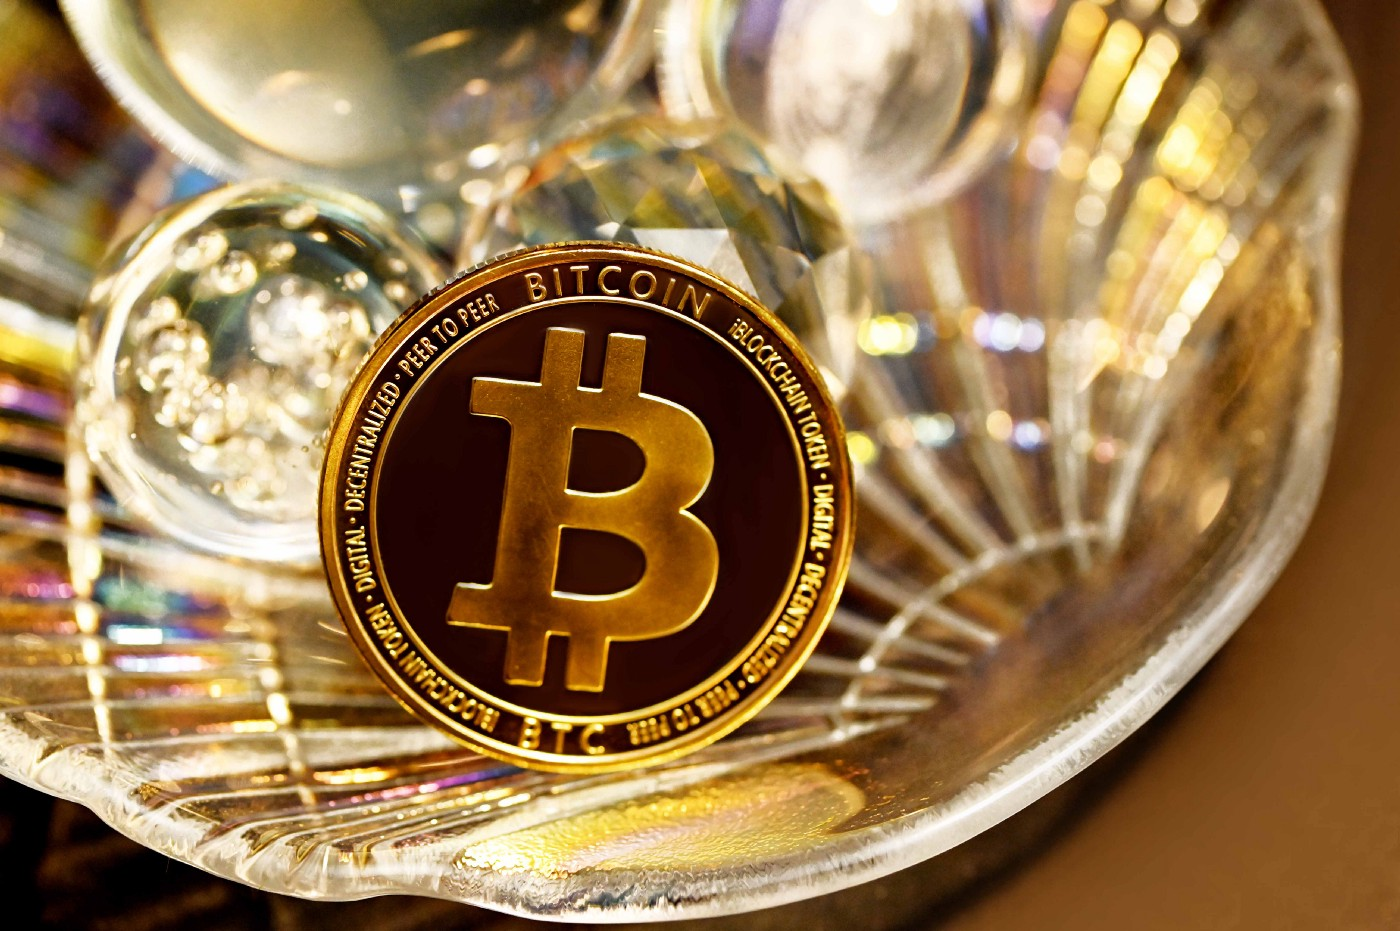 An image of a Bitcoin cryptocurrency 'coin' in a gold dish. I Bought $100 Of Bitcoin On A Whim | Shannon Cheesman | Medium